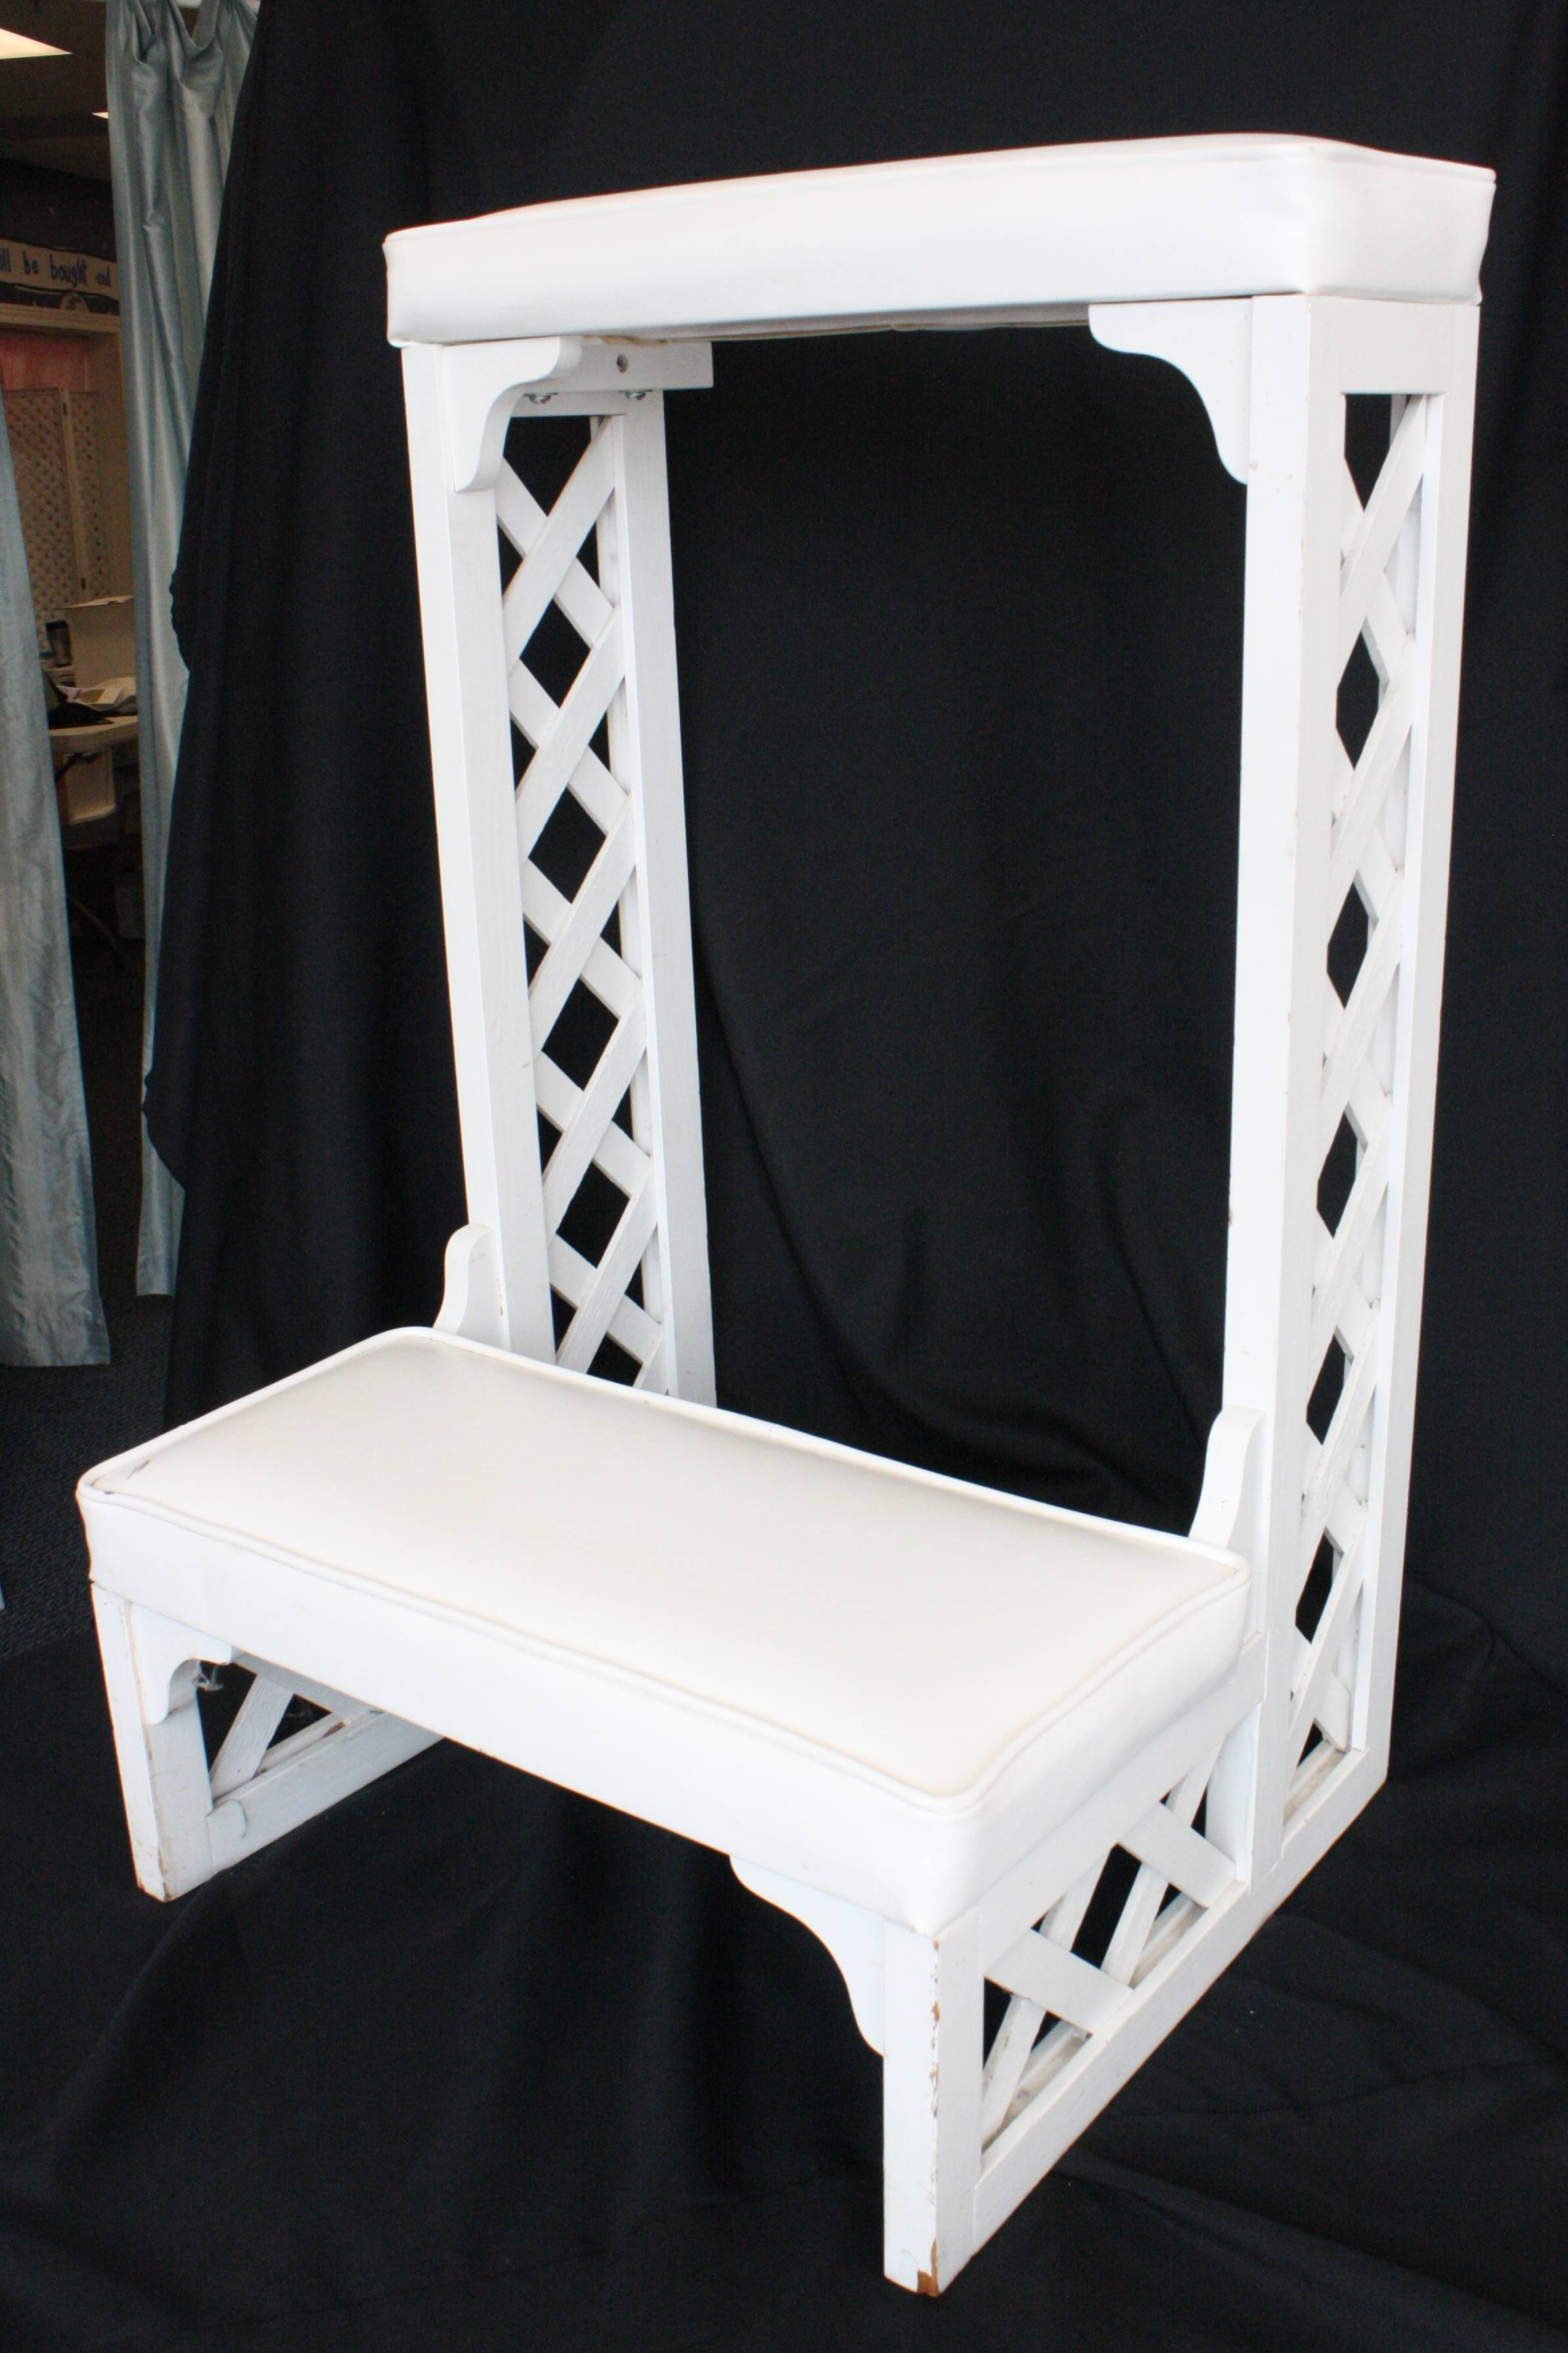 Kneeling benches-set of 2